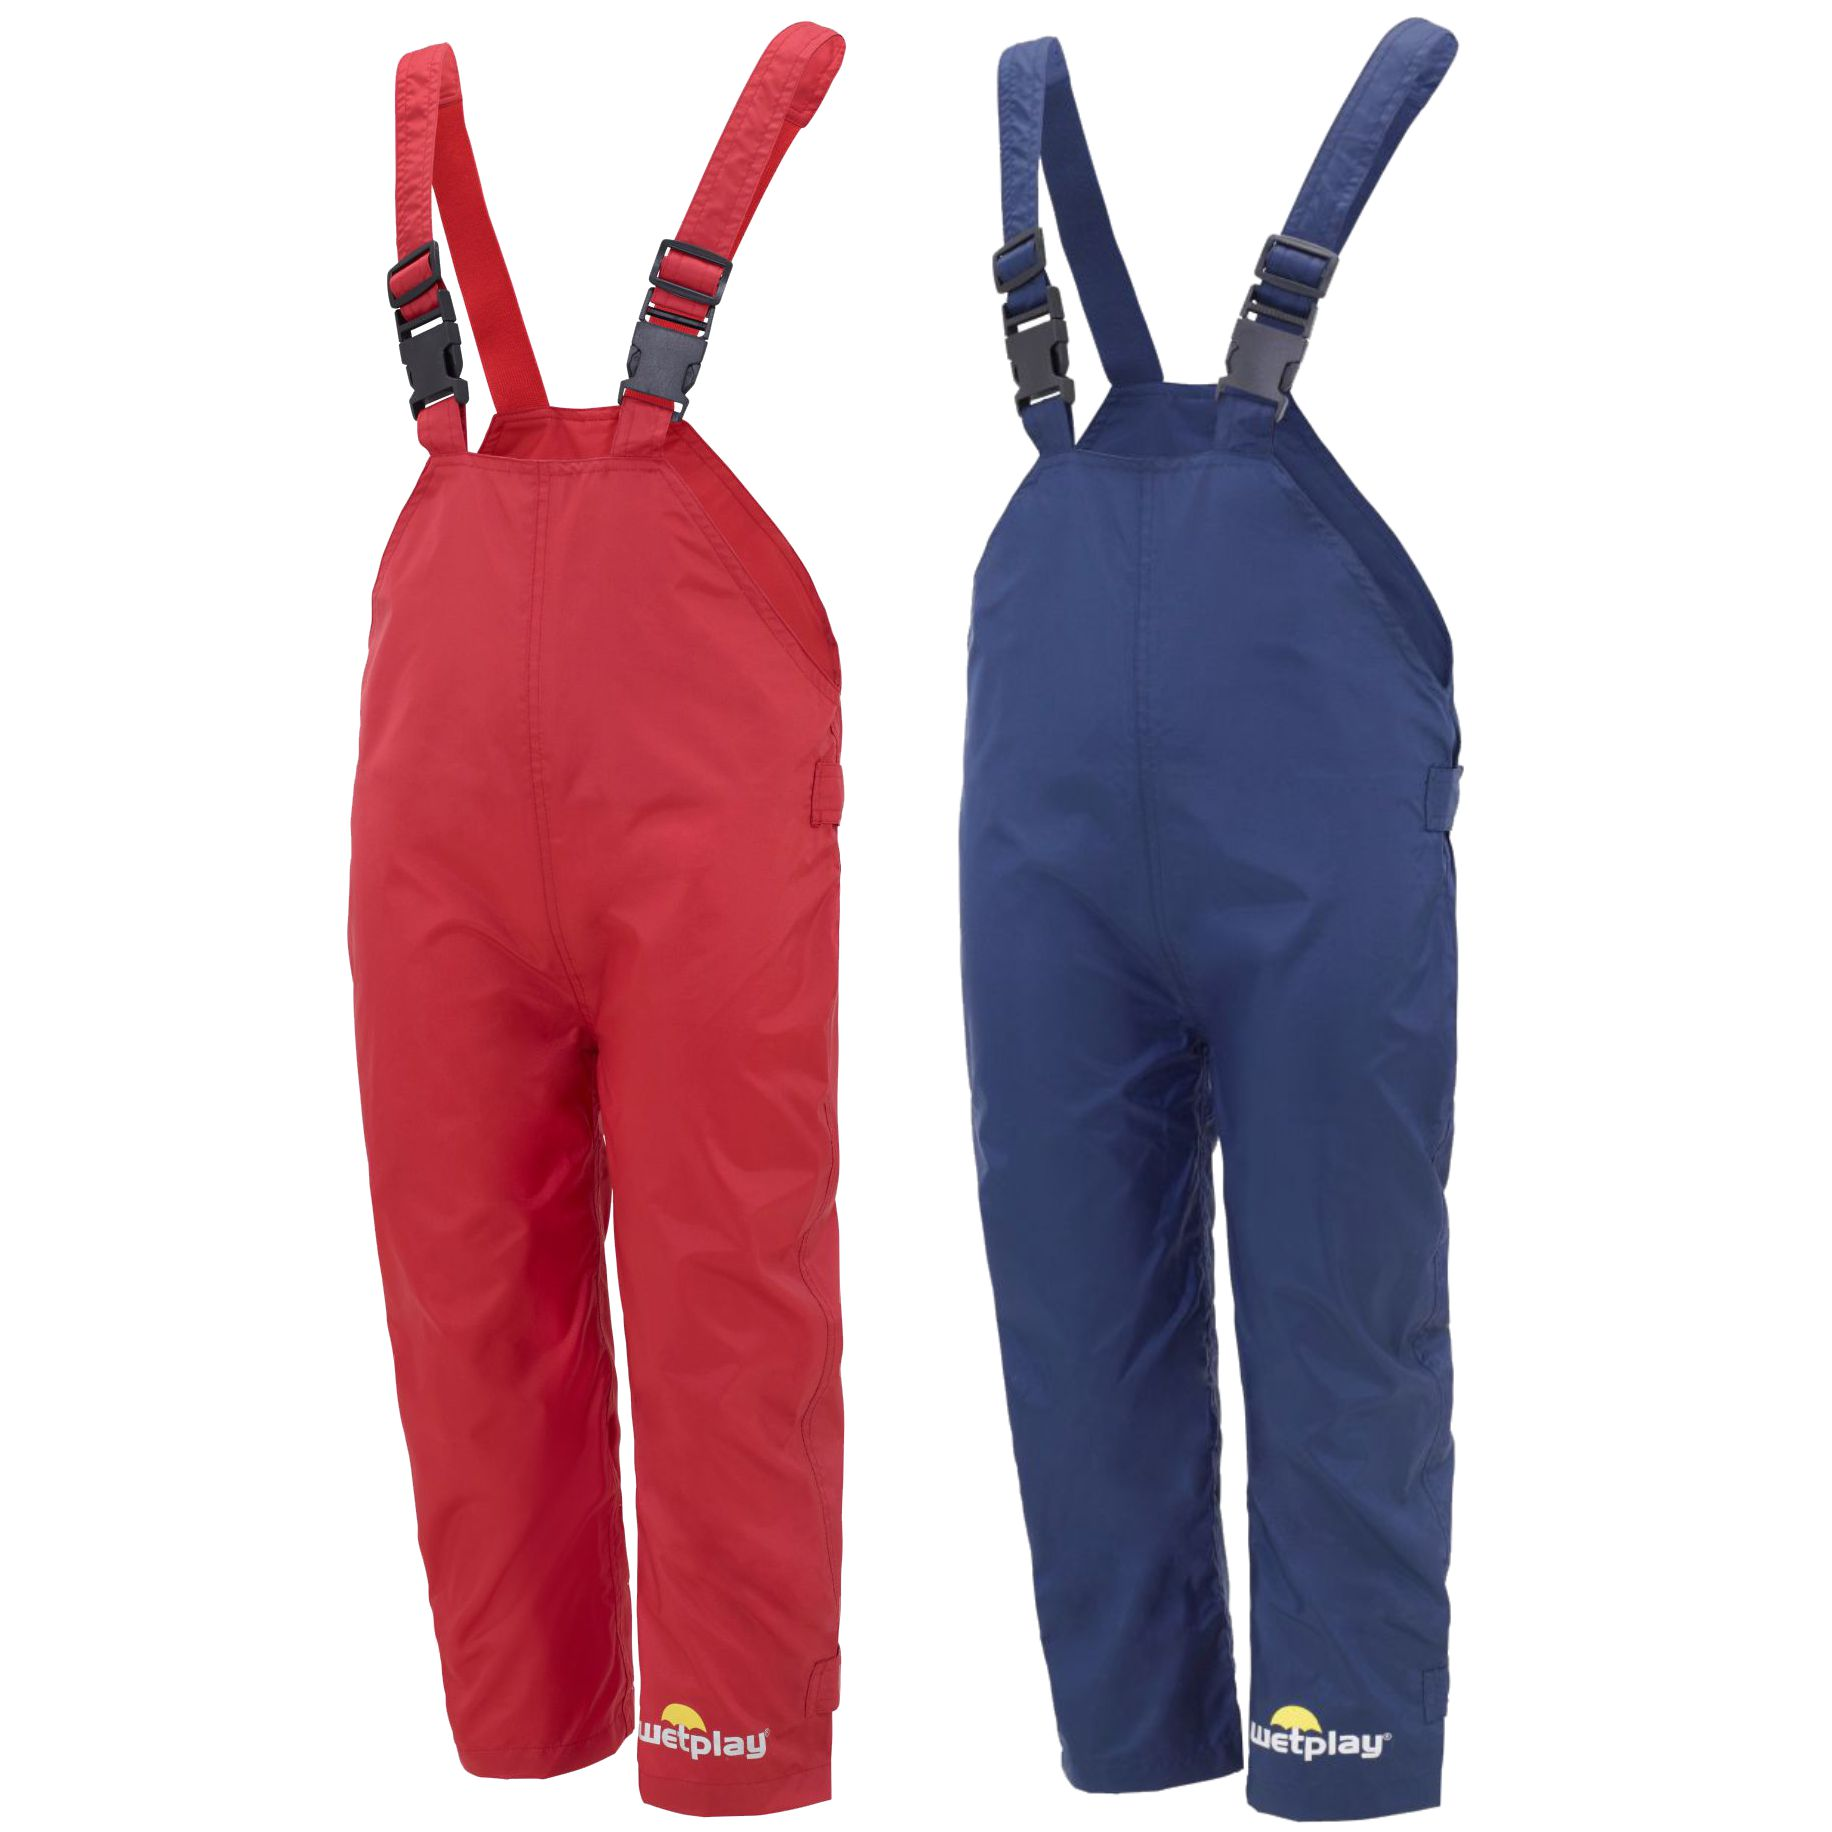 Wetplay Dungarees - £13.95